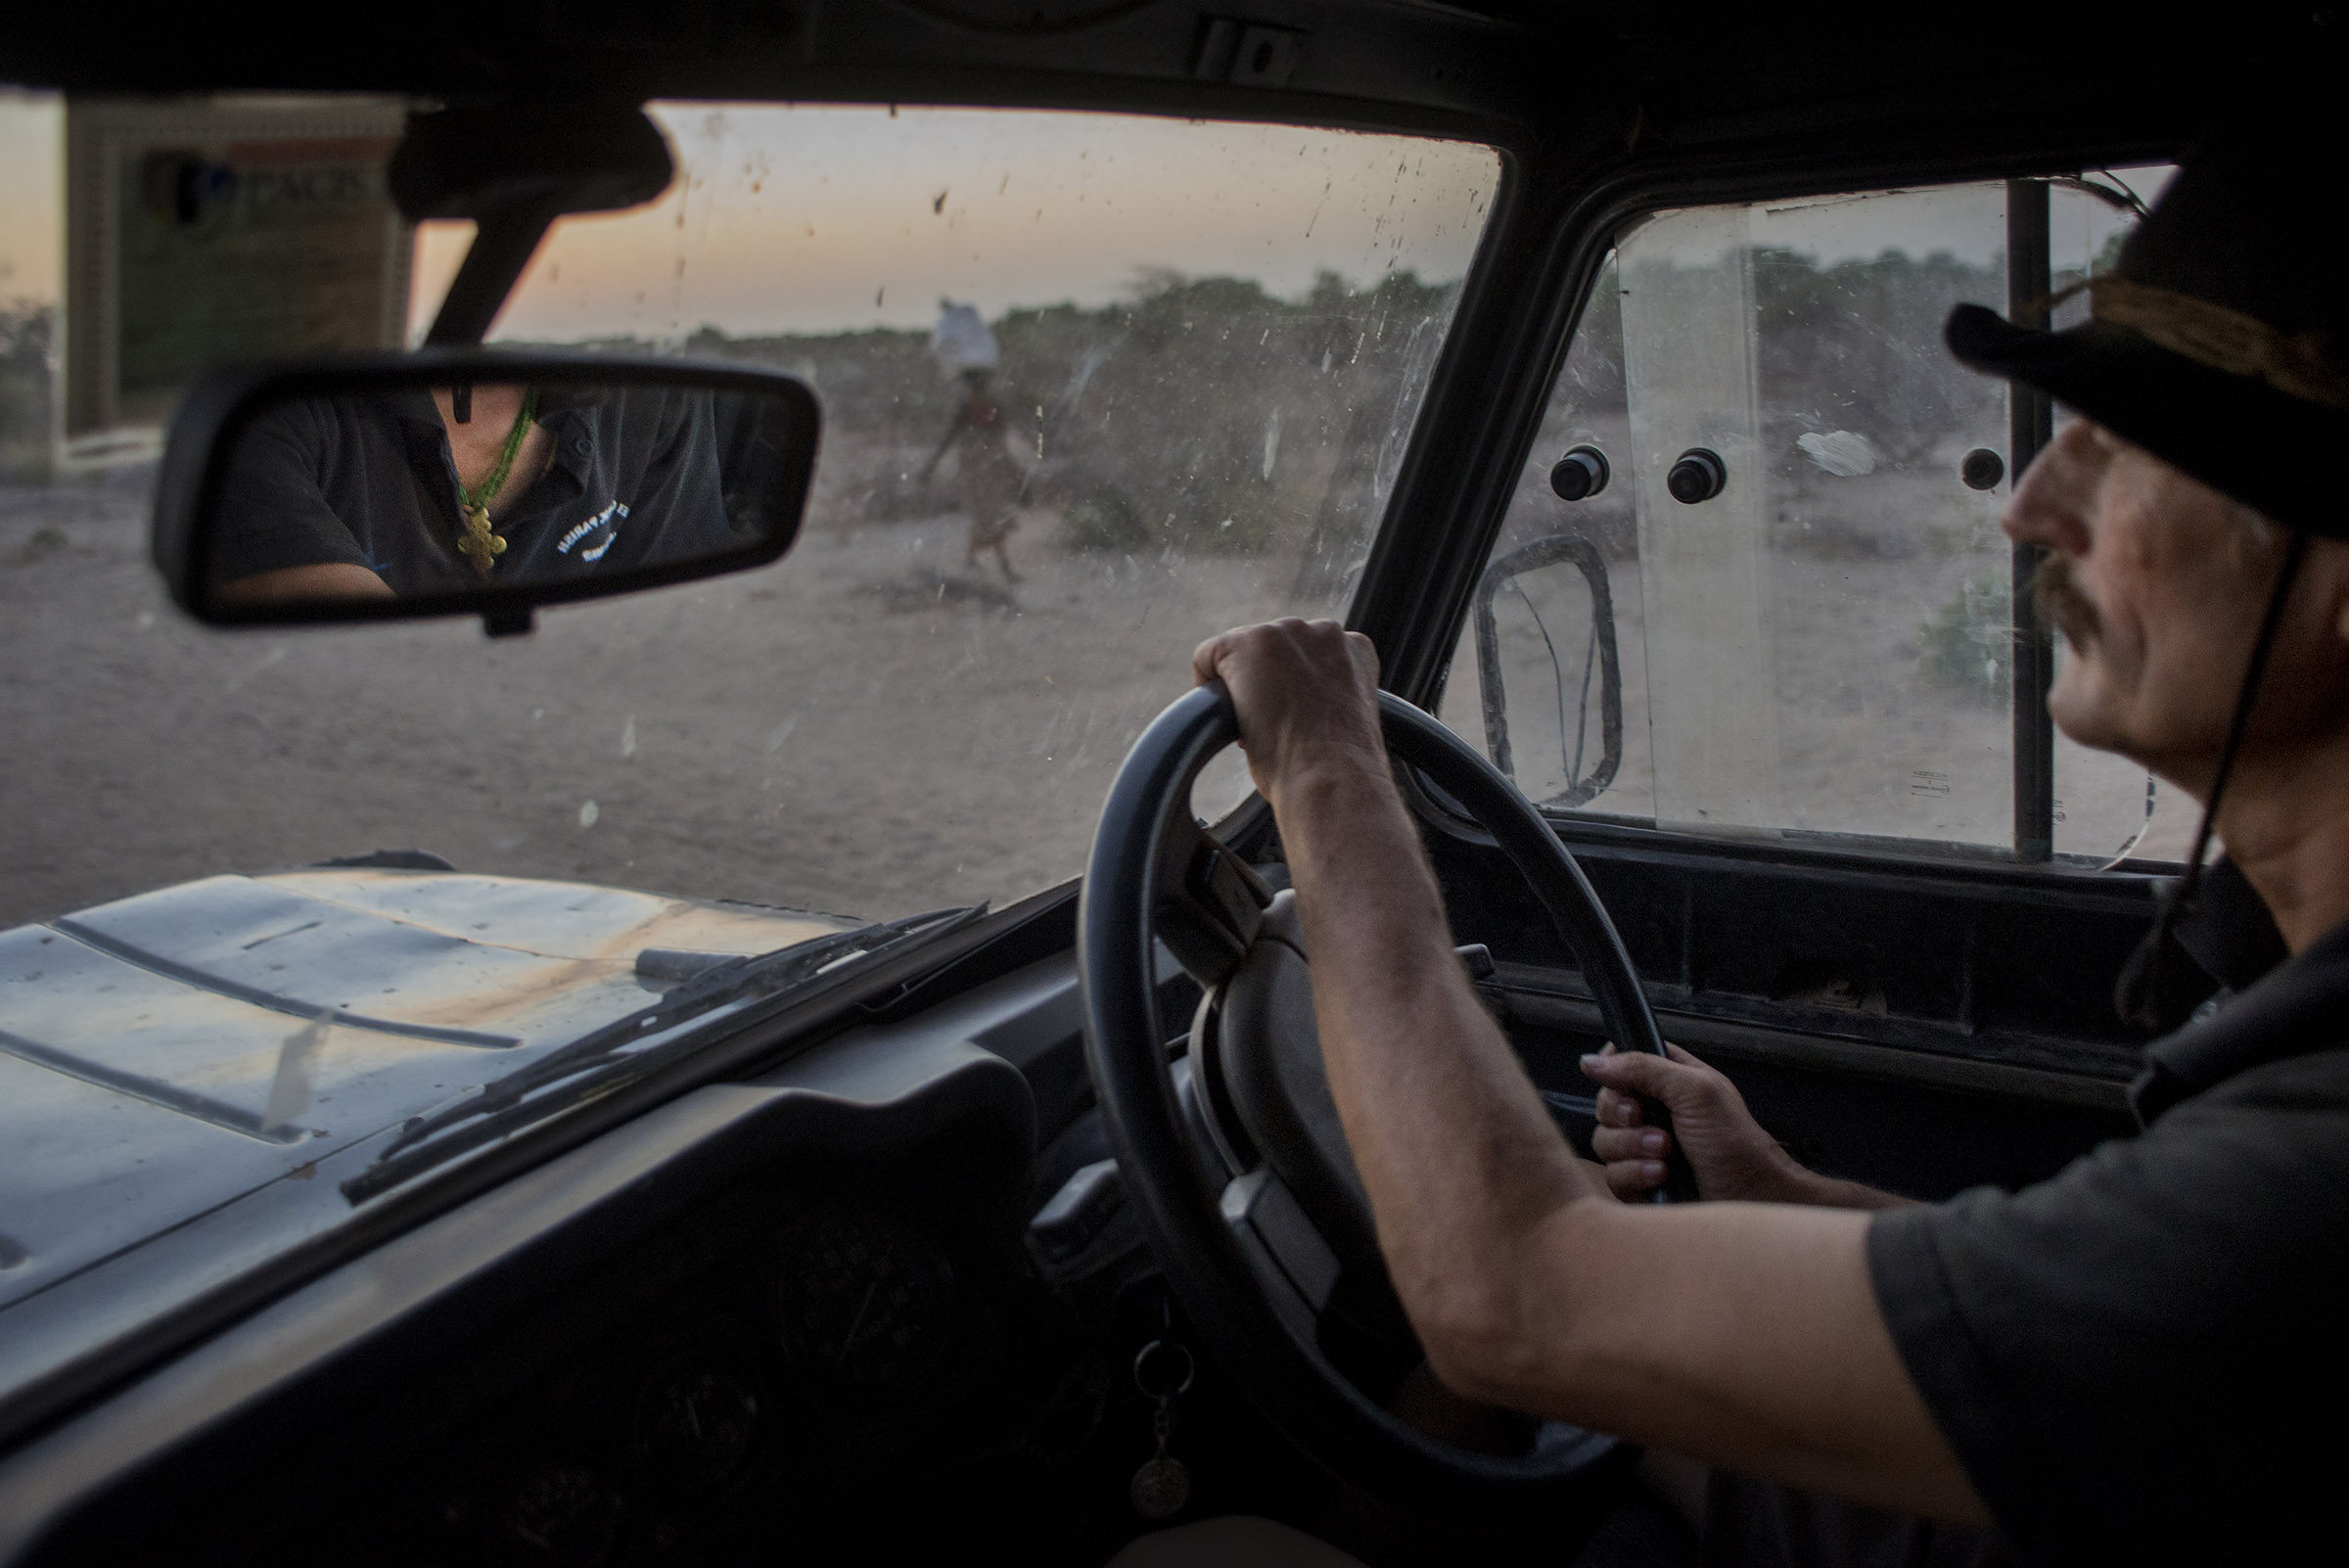 """Even in the ten years that Father Florian has lived with the community, he has seen serious changes in the environment. """"This is not a desert yet,"""" Florian says as he watches wind carry waves of sand across the horizon. """"But it will be soon."""" (Christena Dowsett/The GroundTruth Project)"""